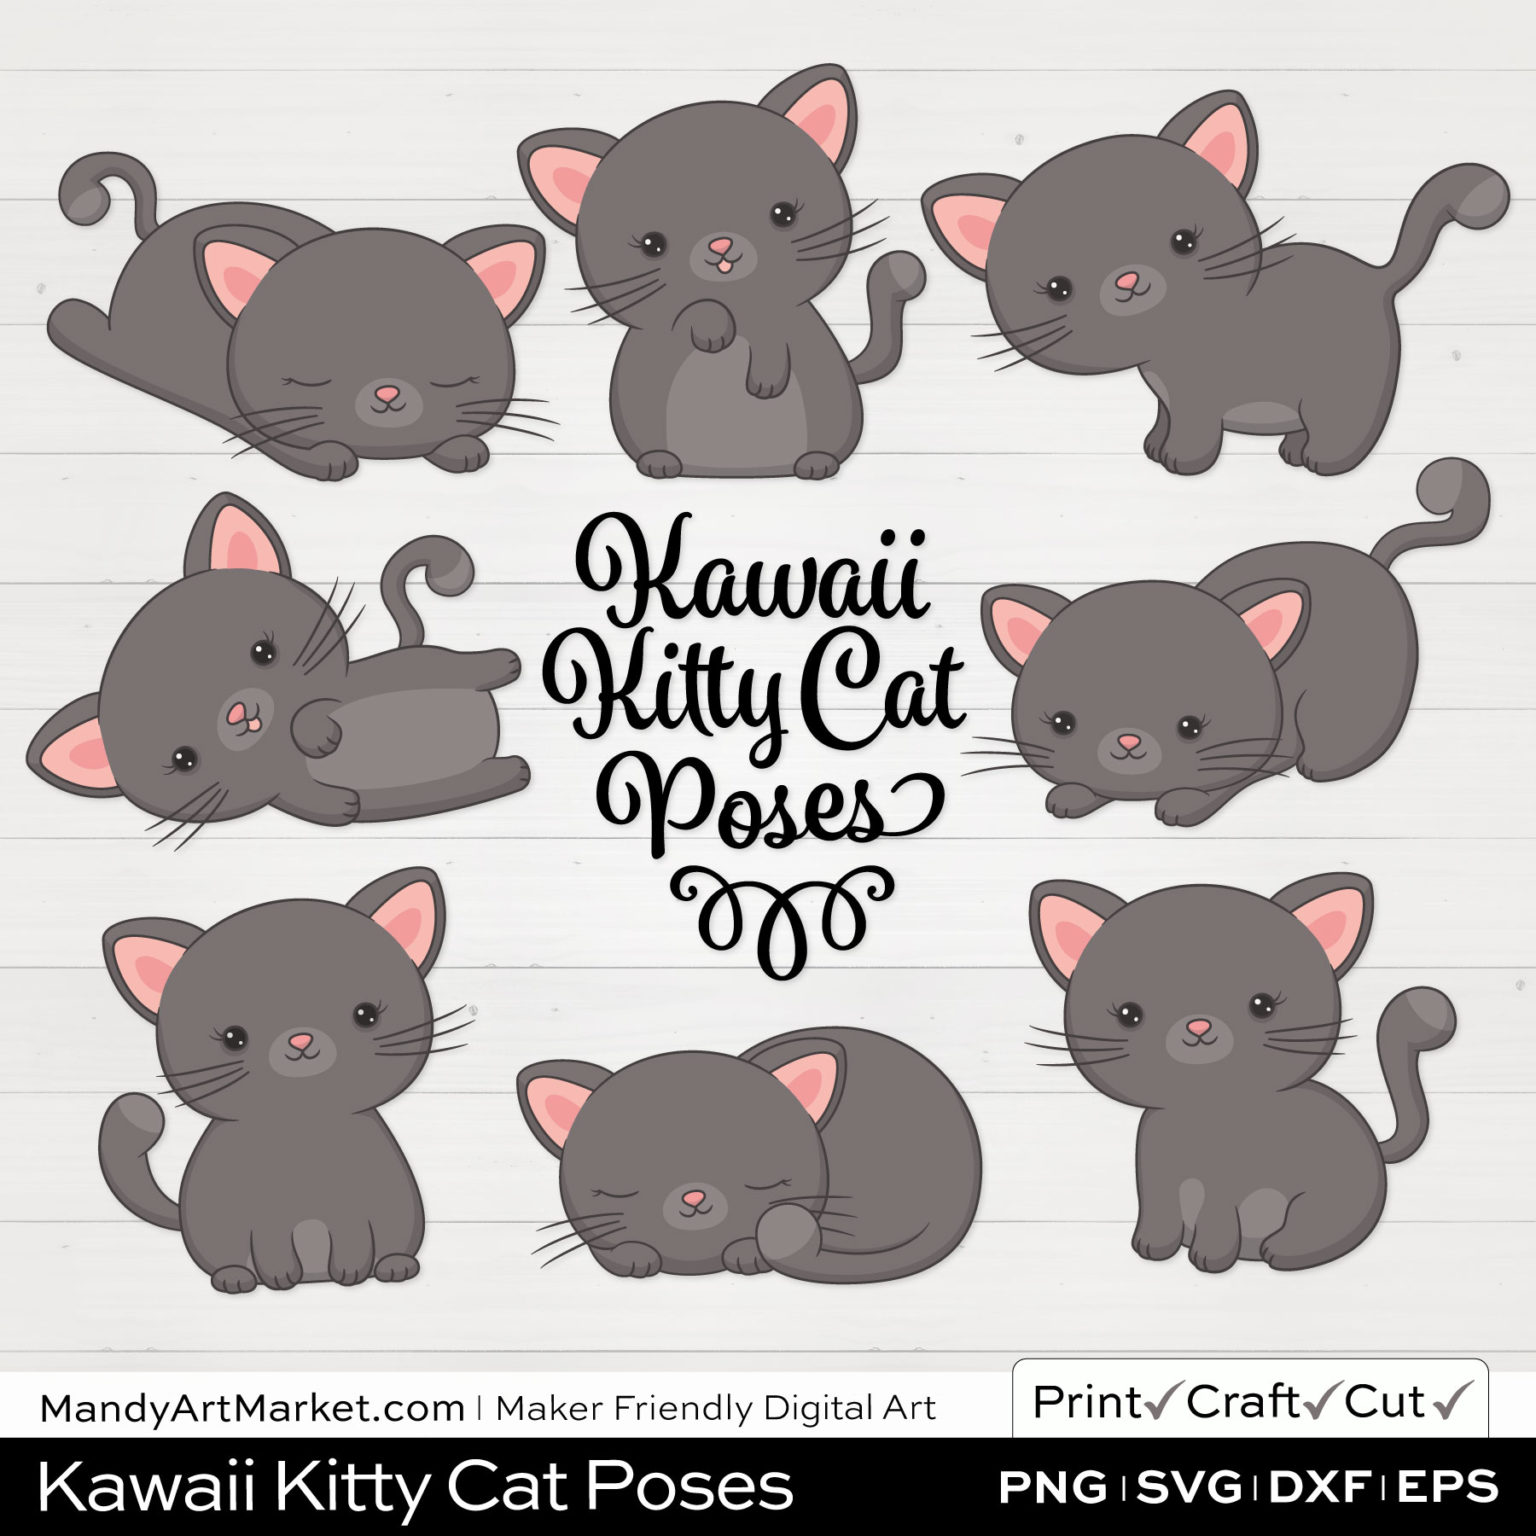 Pewter Gray Kawaii Kitty Cat Poses Clipart on White Background